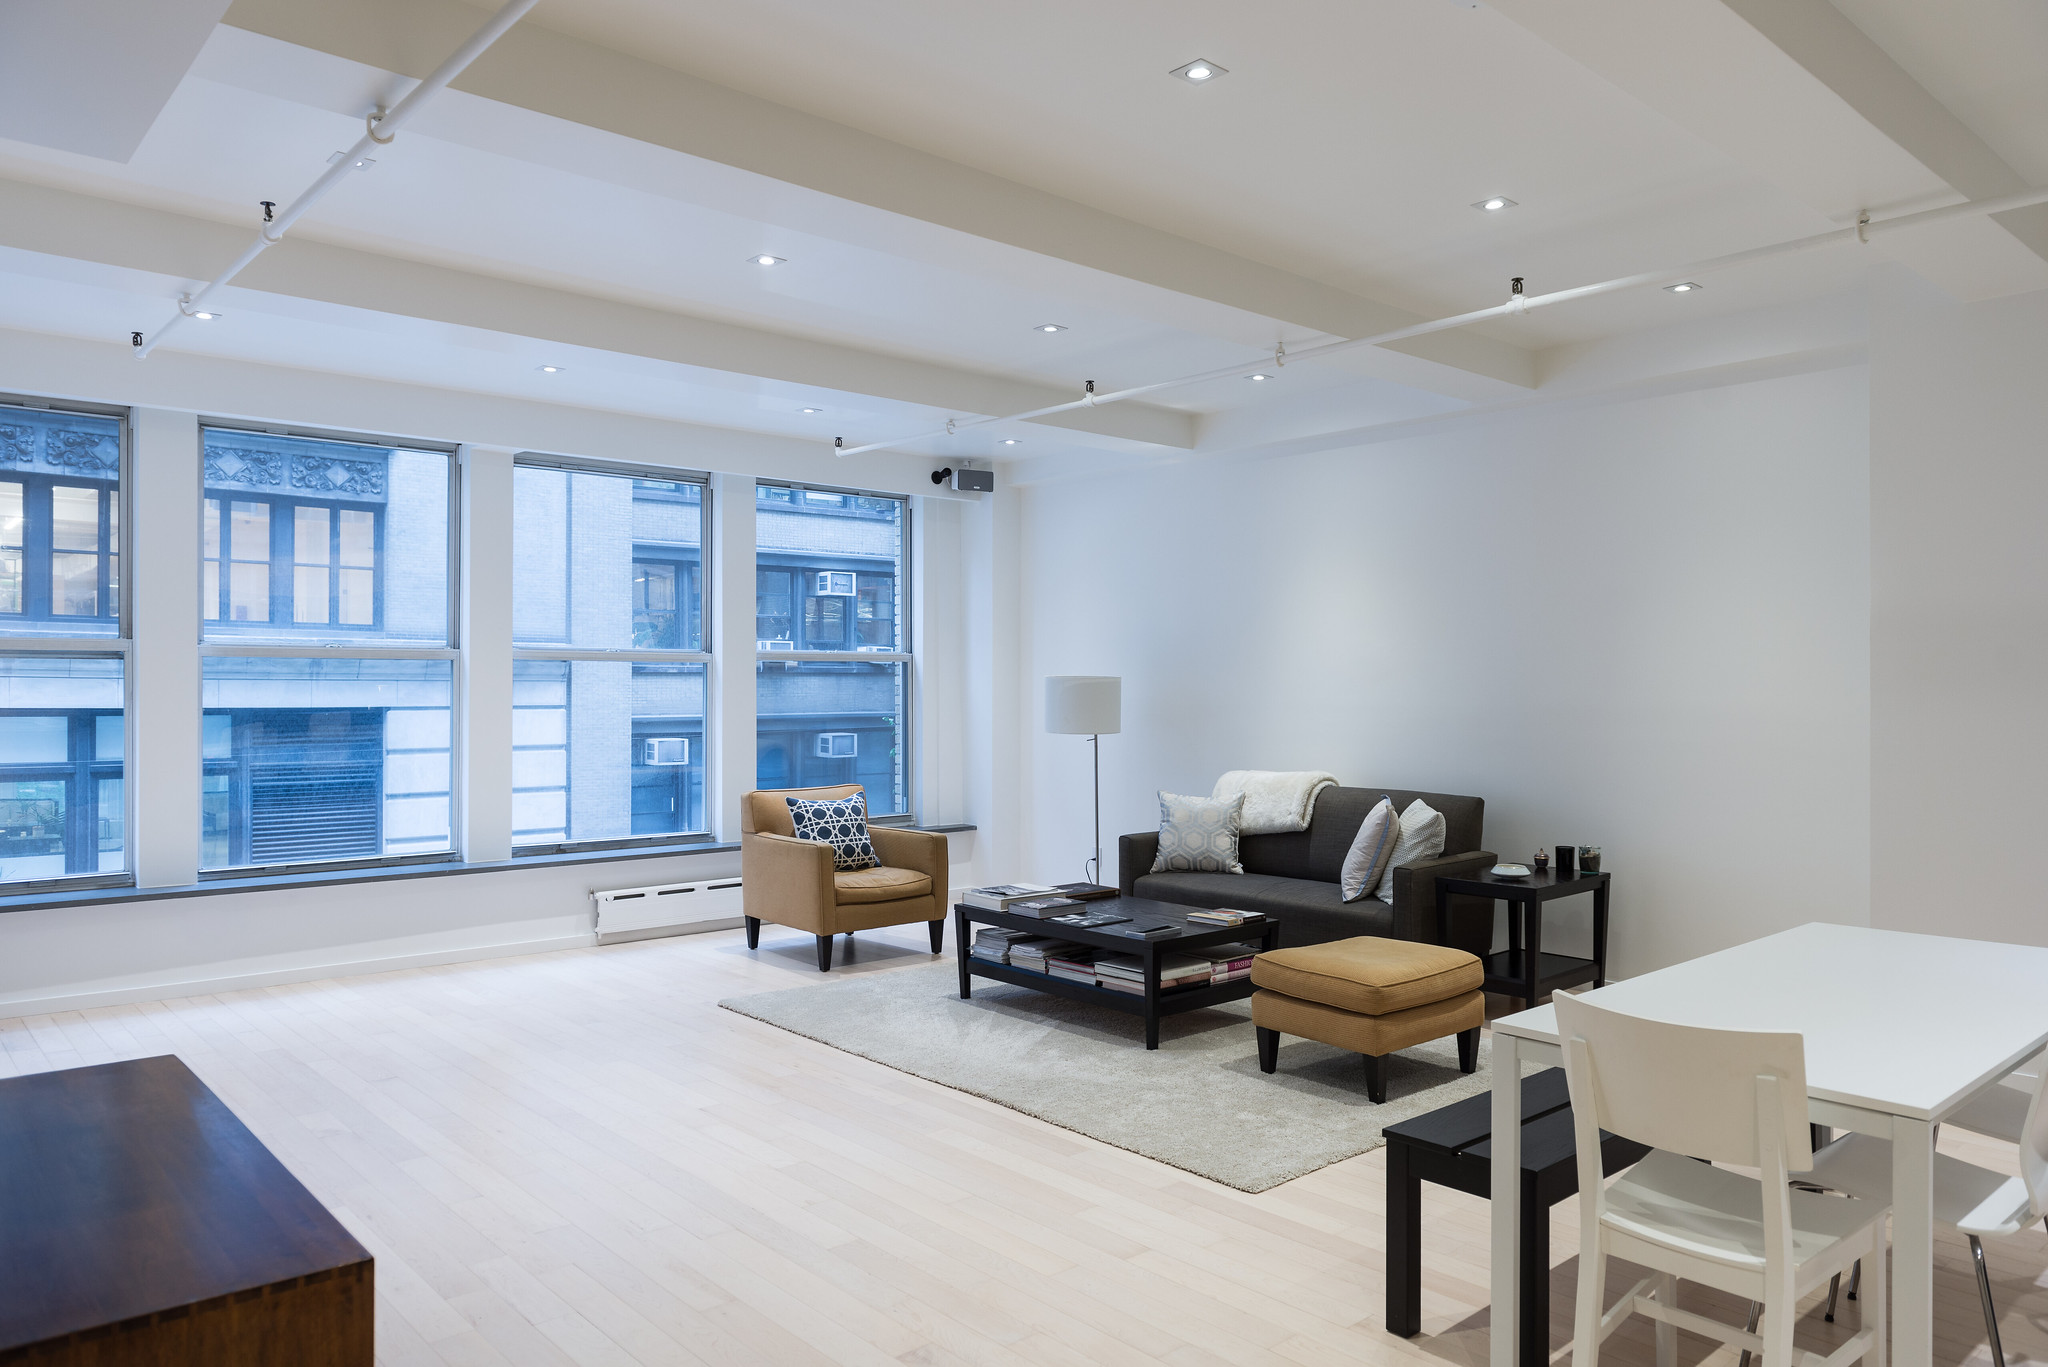 An NYC Apartment Renovation - Phase 1 Complete!